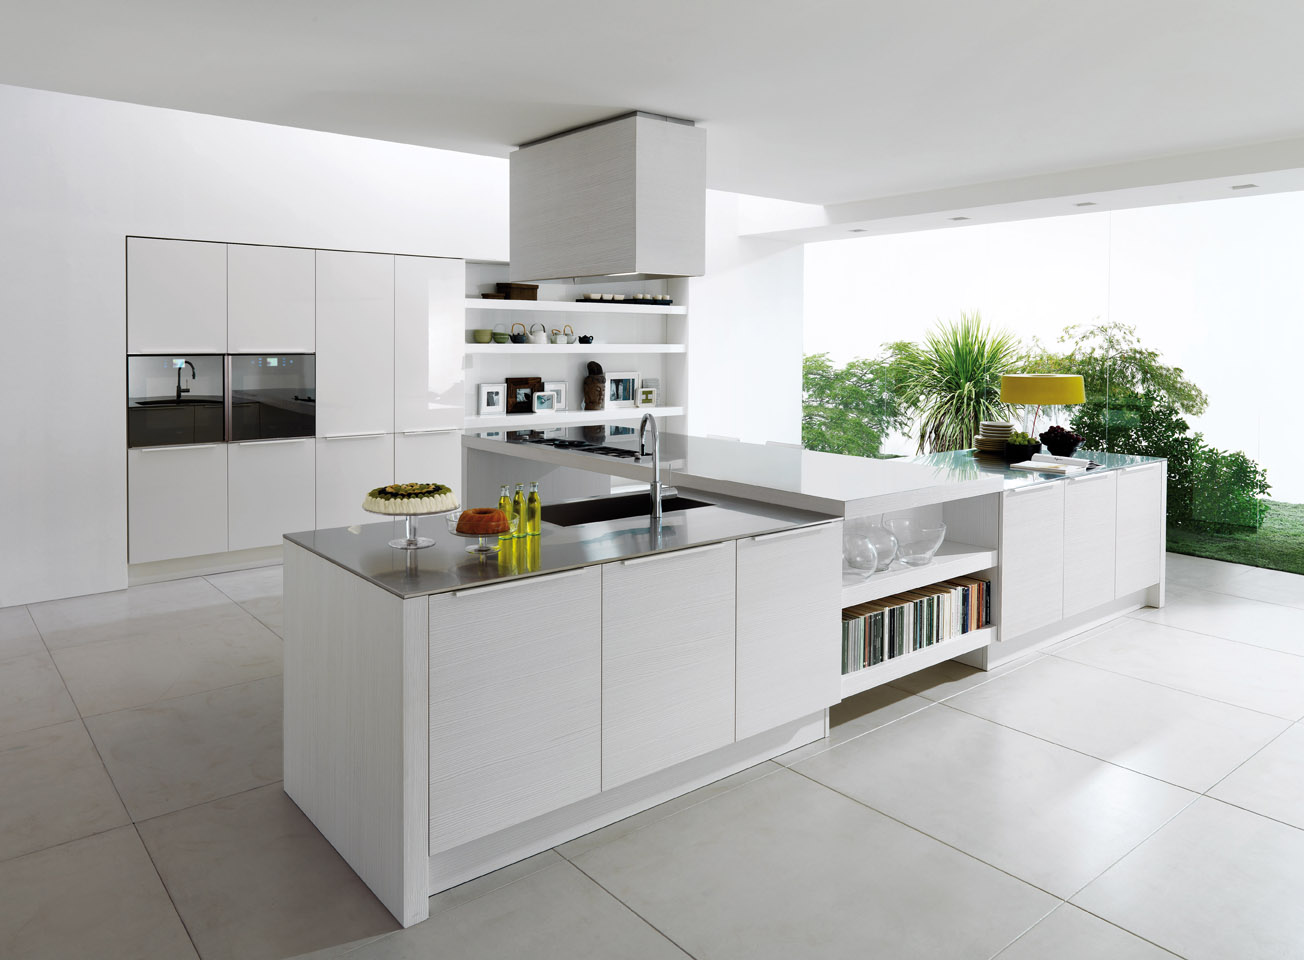 Lower Bookshelves in Modern White Kitchen Cabinets Completing Open Kitchen Area with Glossy Countertop